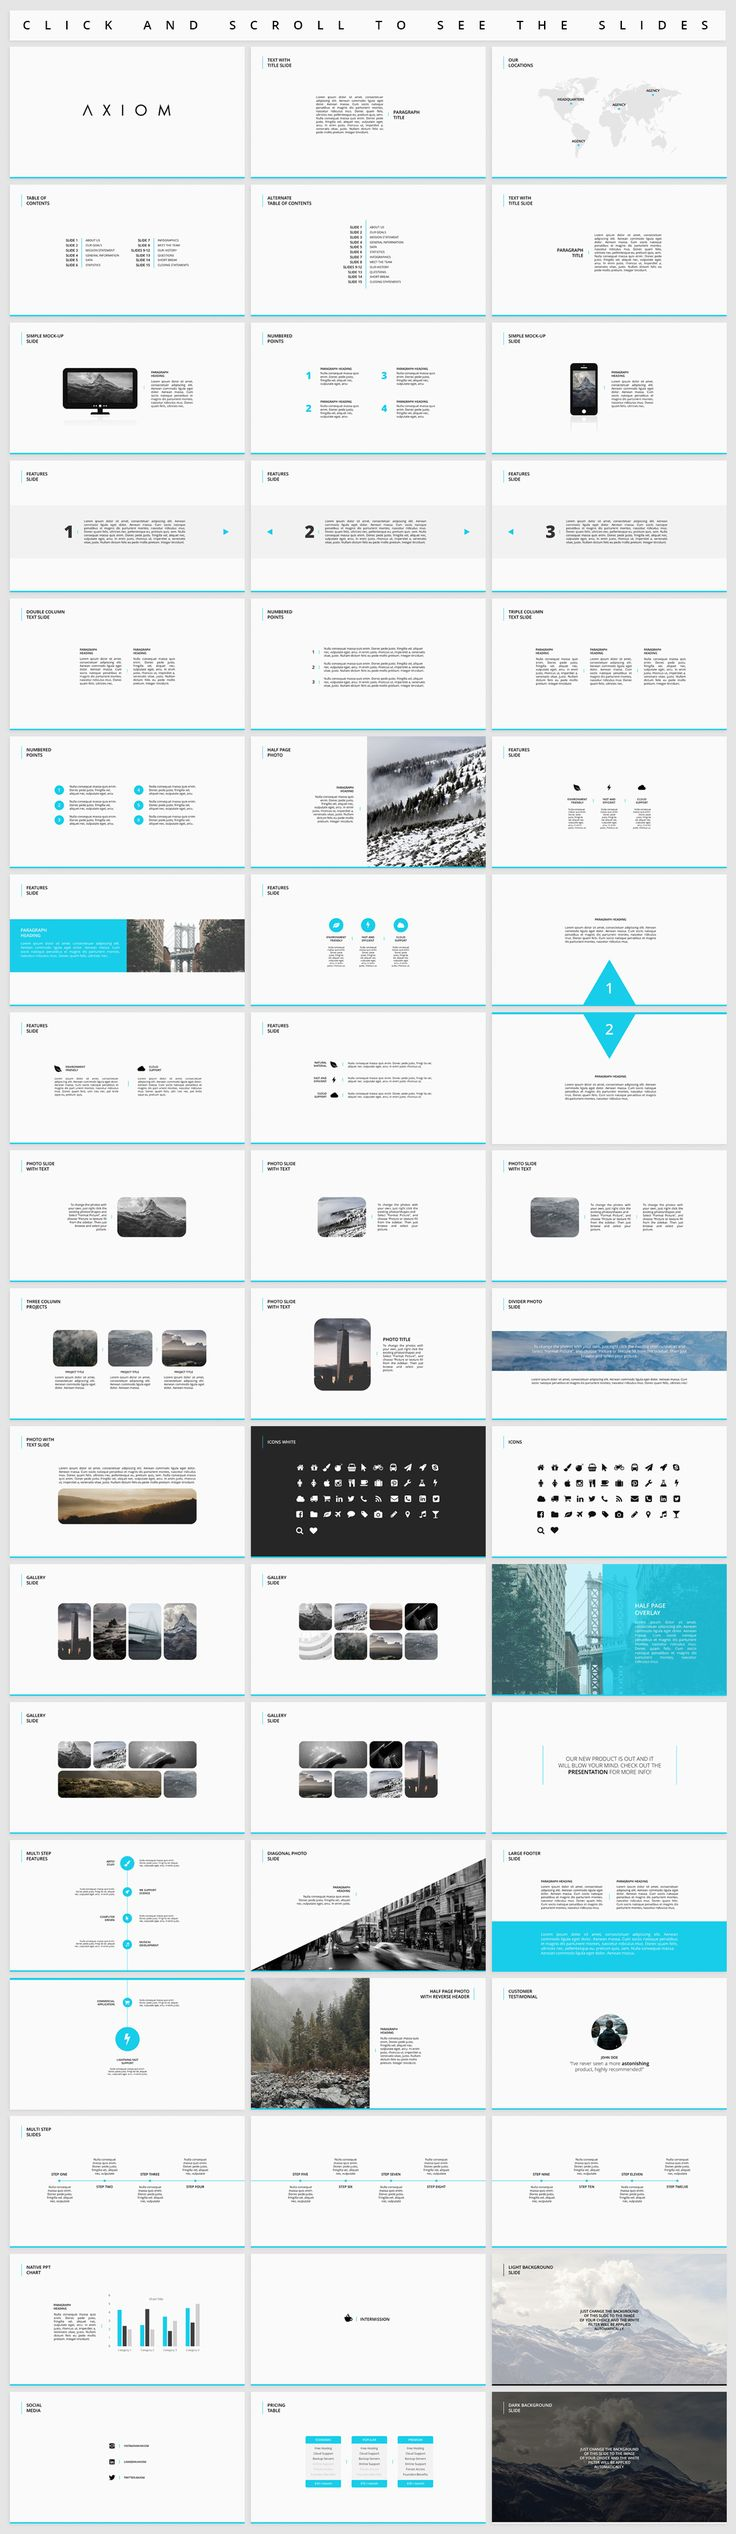 best ideas about ppt template presentation axiom simple presentation by tugcu design co on creativemarket